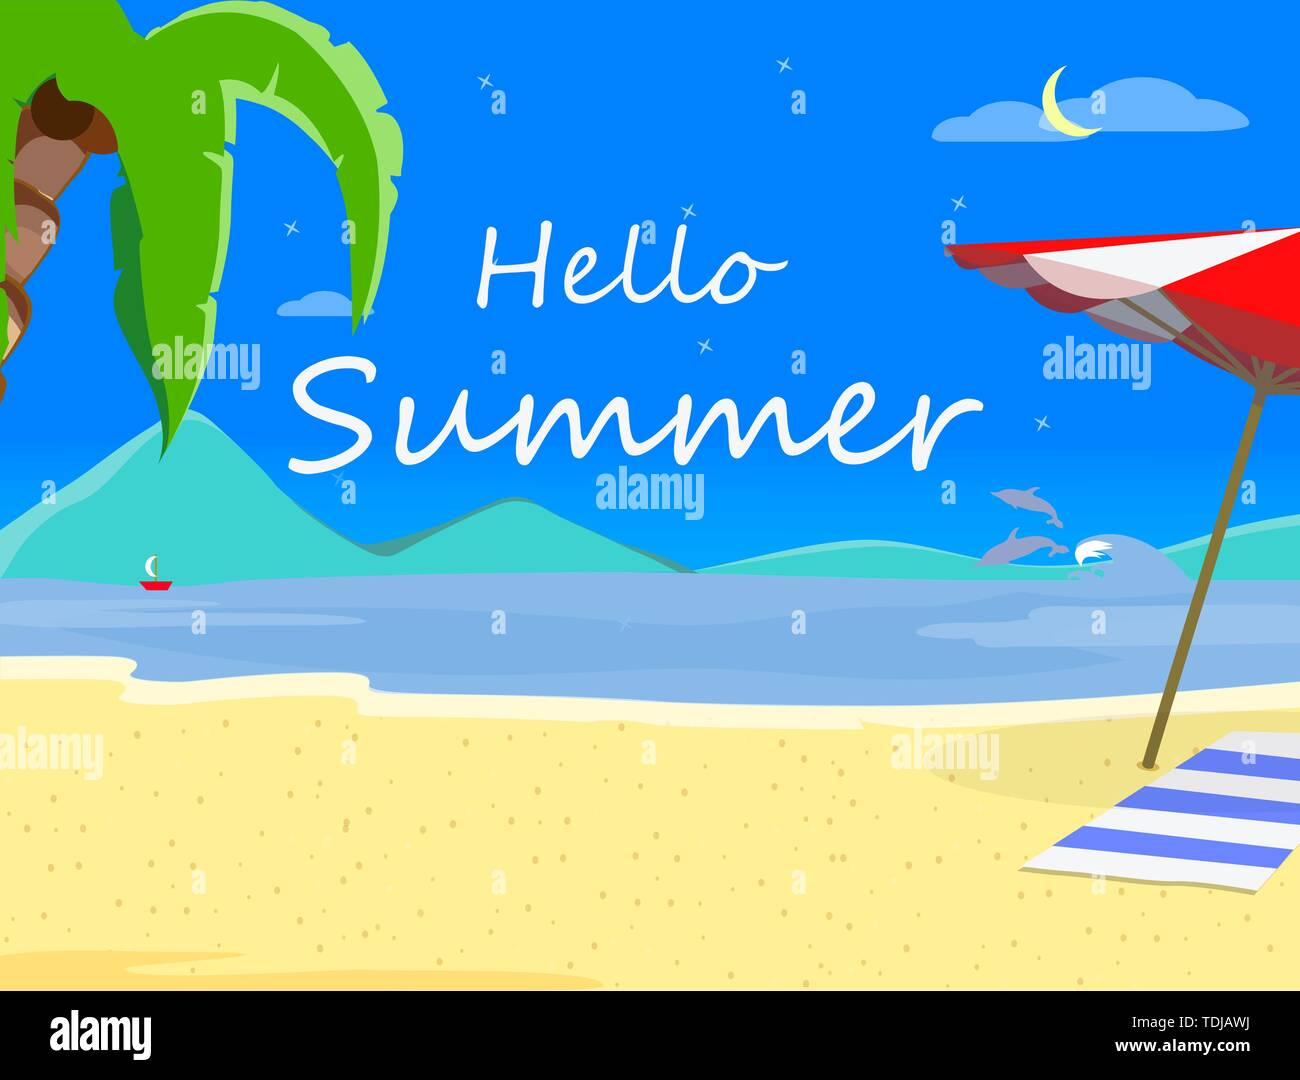 Beach Background with Hello Summer Typography and Sand Shore, Hawaii Night Time Landscape of Exotic Seaside, Thailand Resort Seascape Poster, Beach Pa Stock Vector